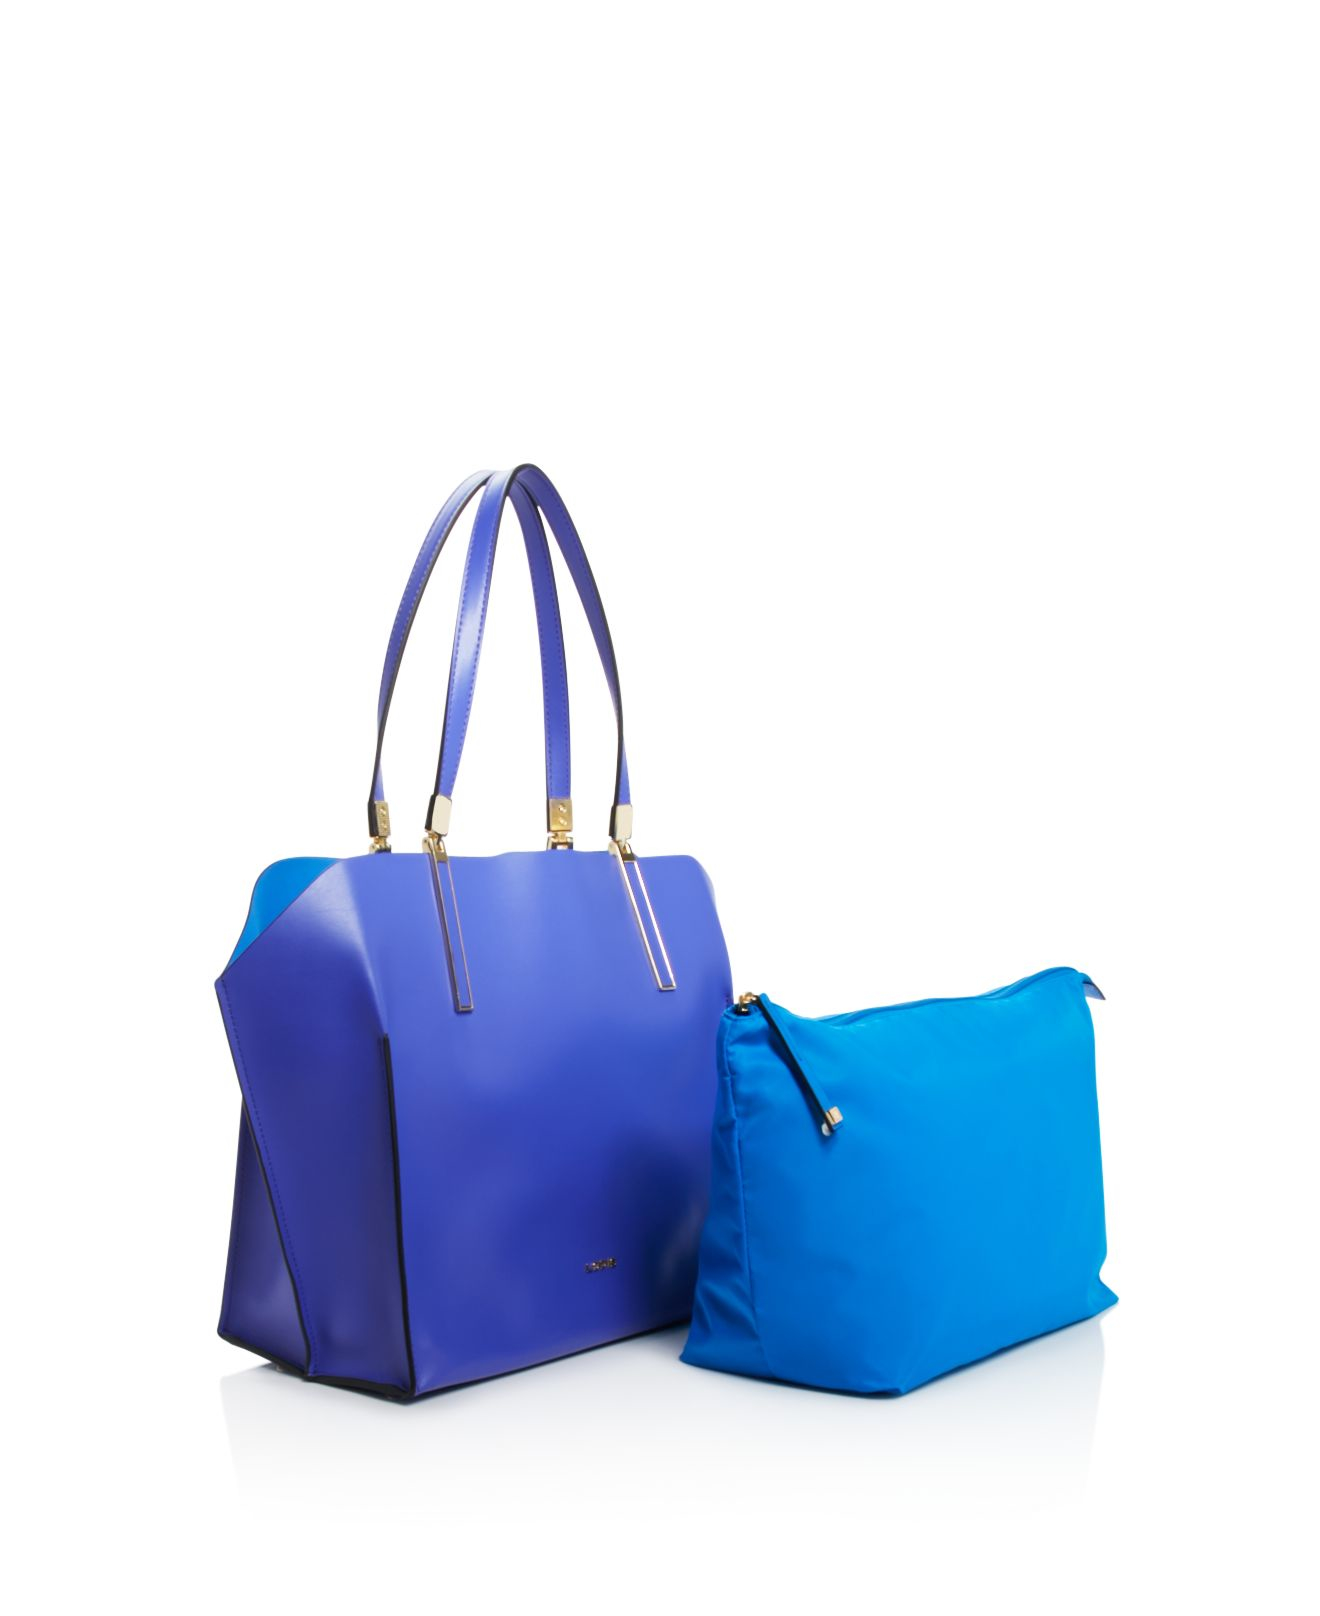 Lodis Synthetic Blair Anita Tote - Compare At $298 in Purple (Blue)